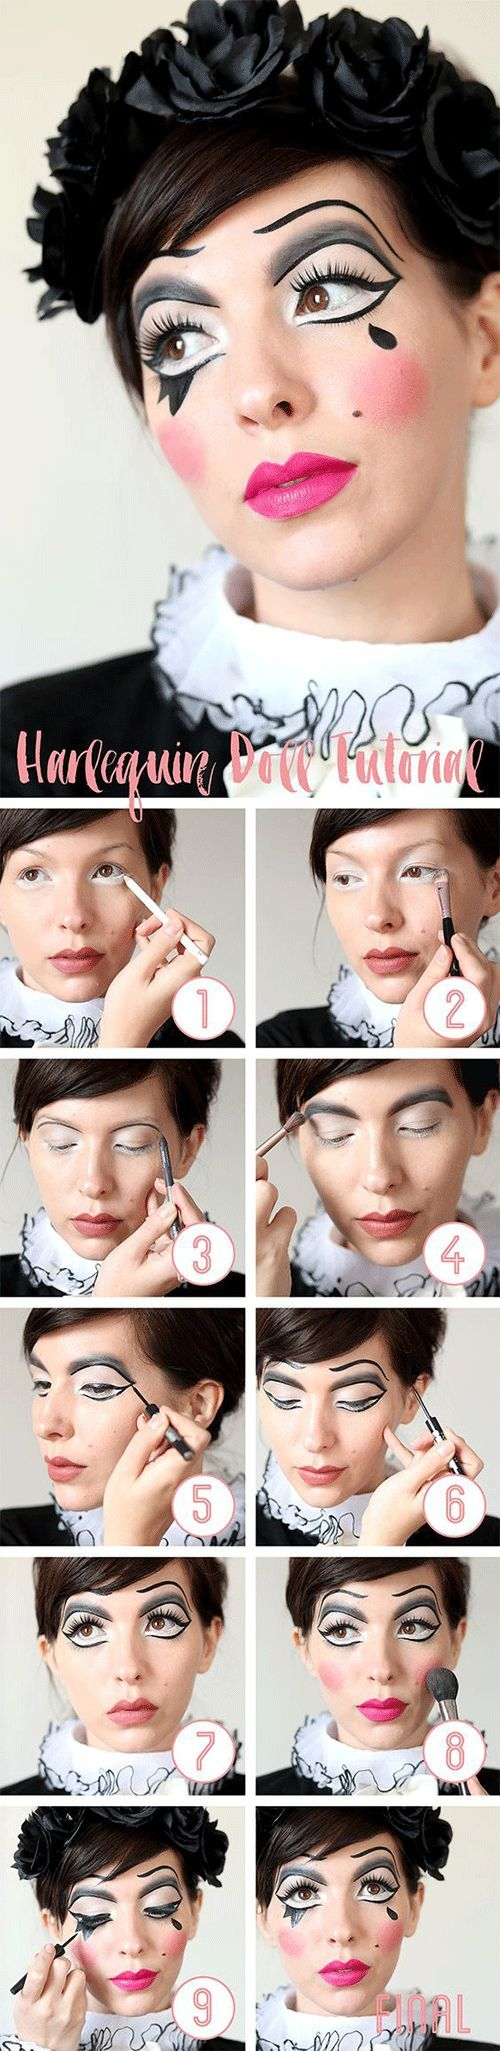 25+ Step by Step Halloween Makeup Tutorials for Beginners